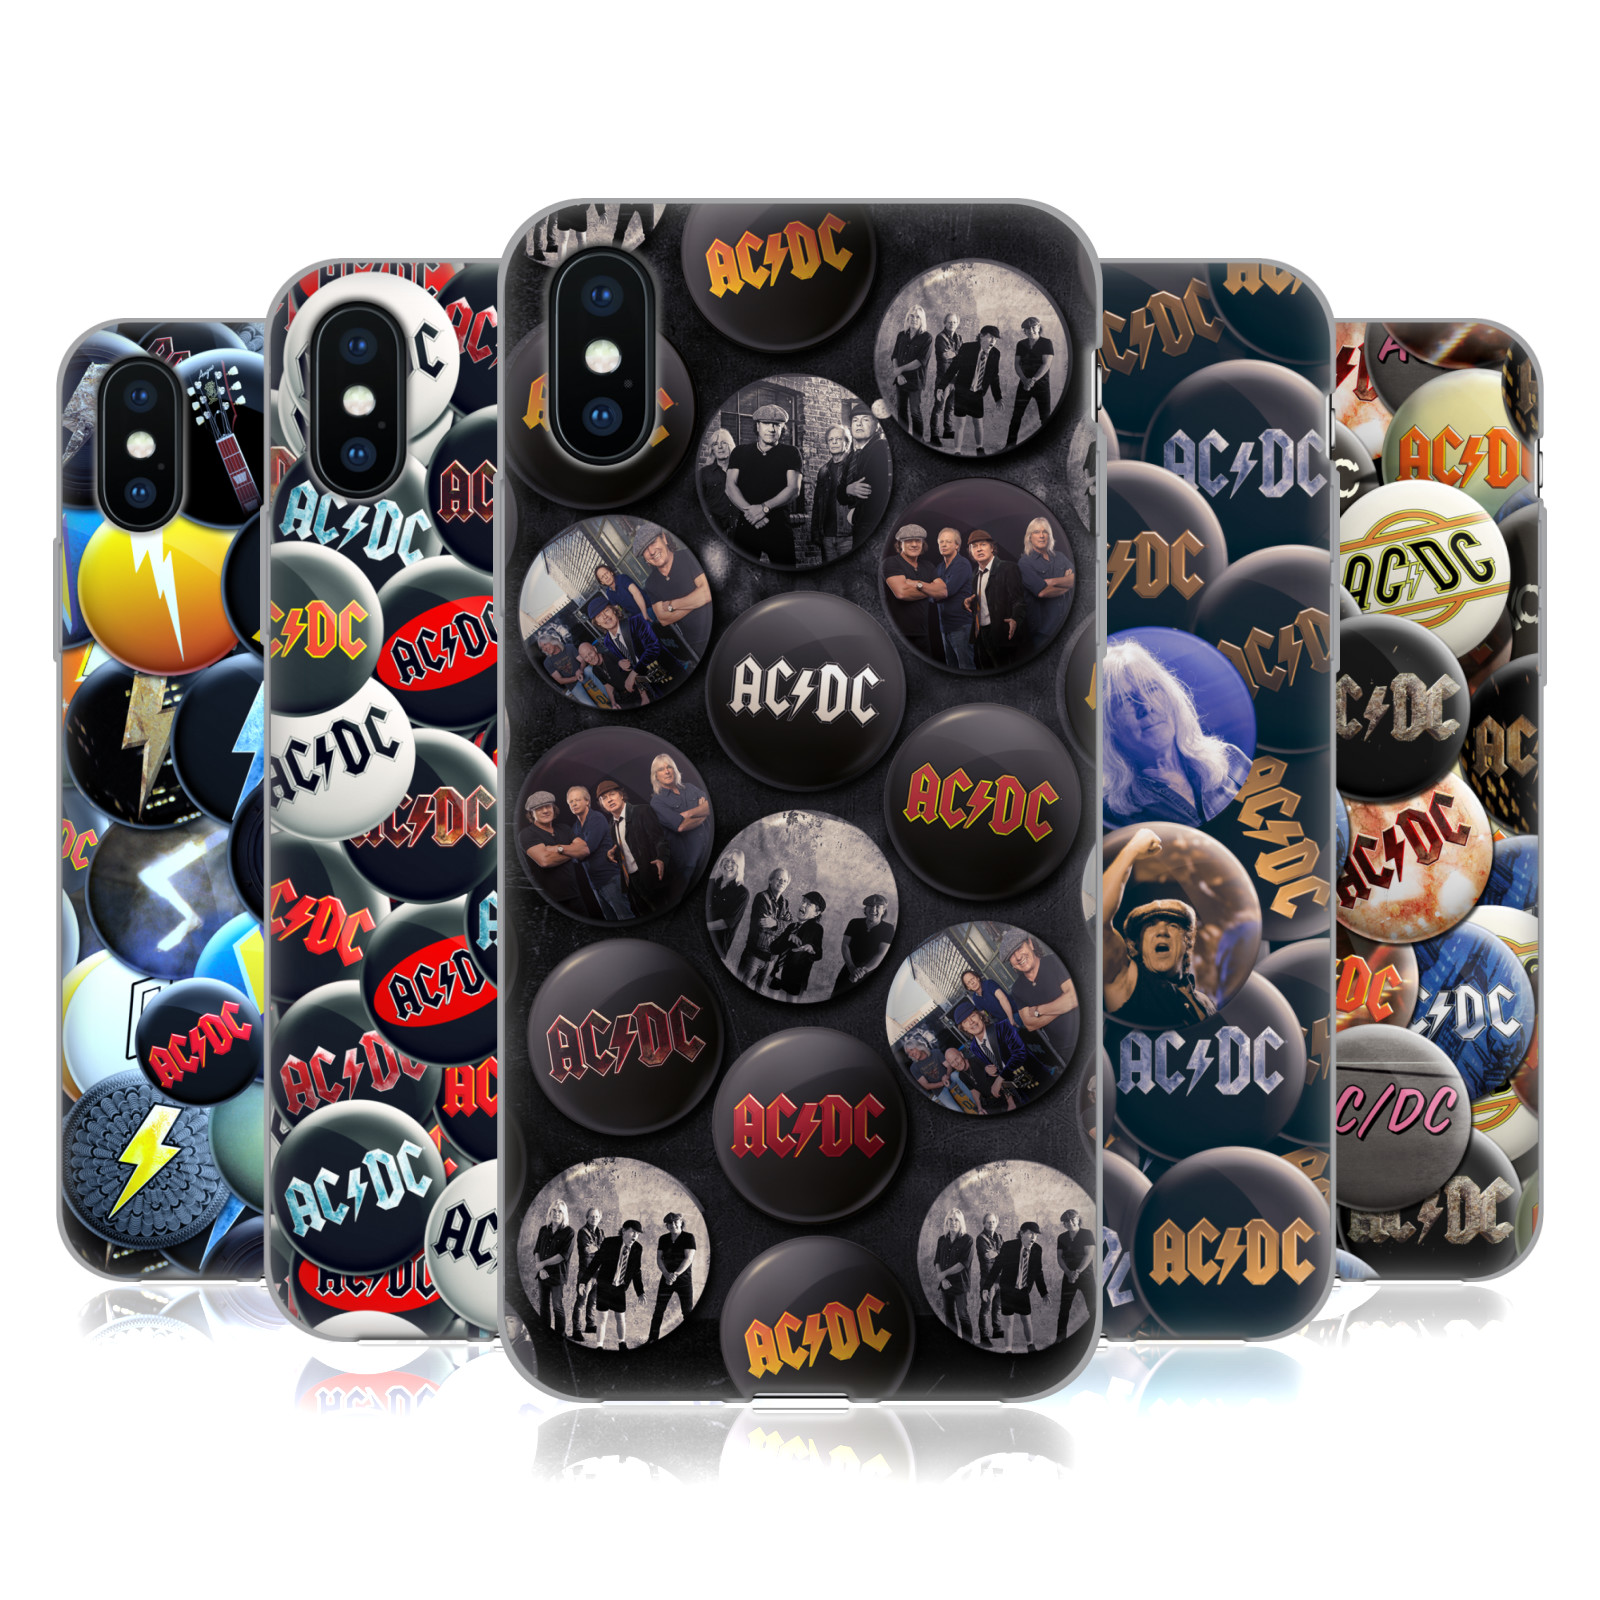 AC/DC ACDC <!--translate-lineup-->Button Pins<!--translate-lineup-->